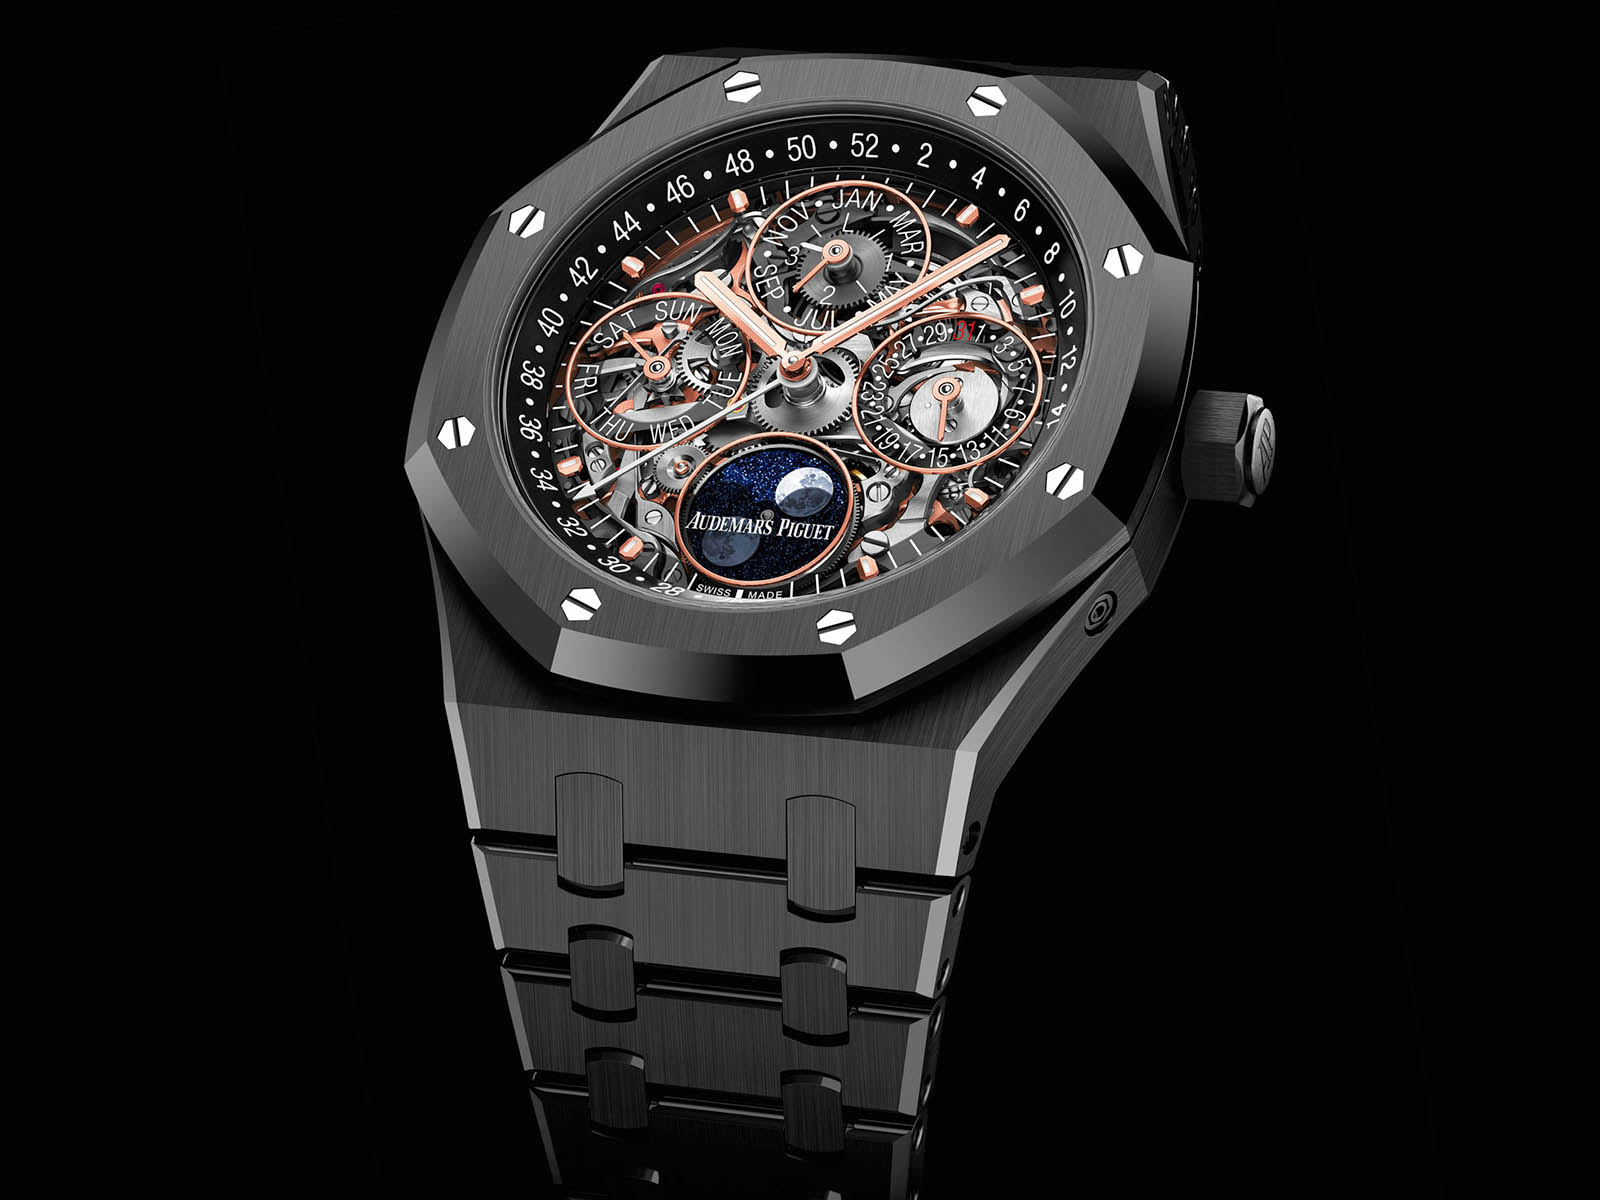 audemars-piguet-royal-oak-perpetual-calendar-ceramic-1.jpg